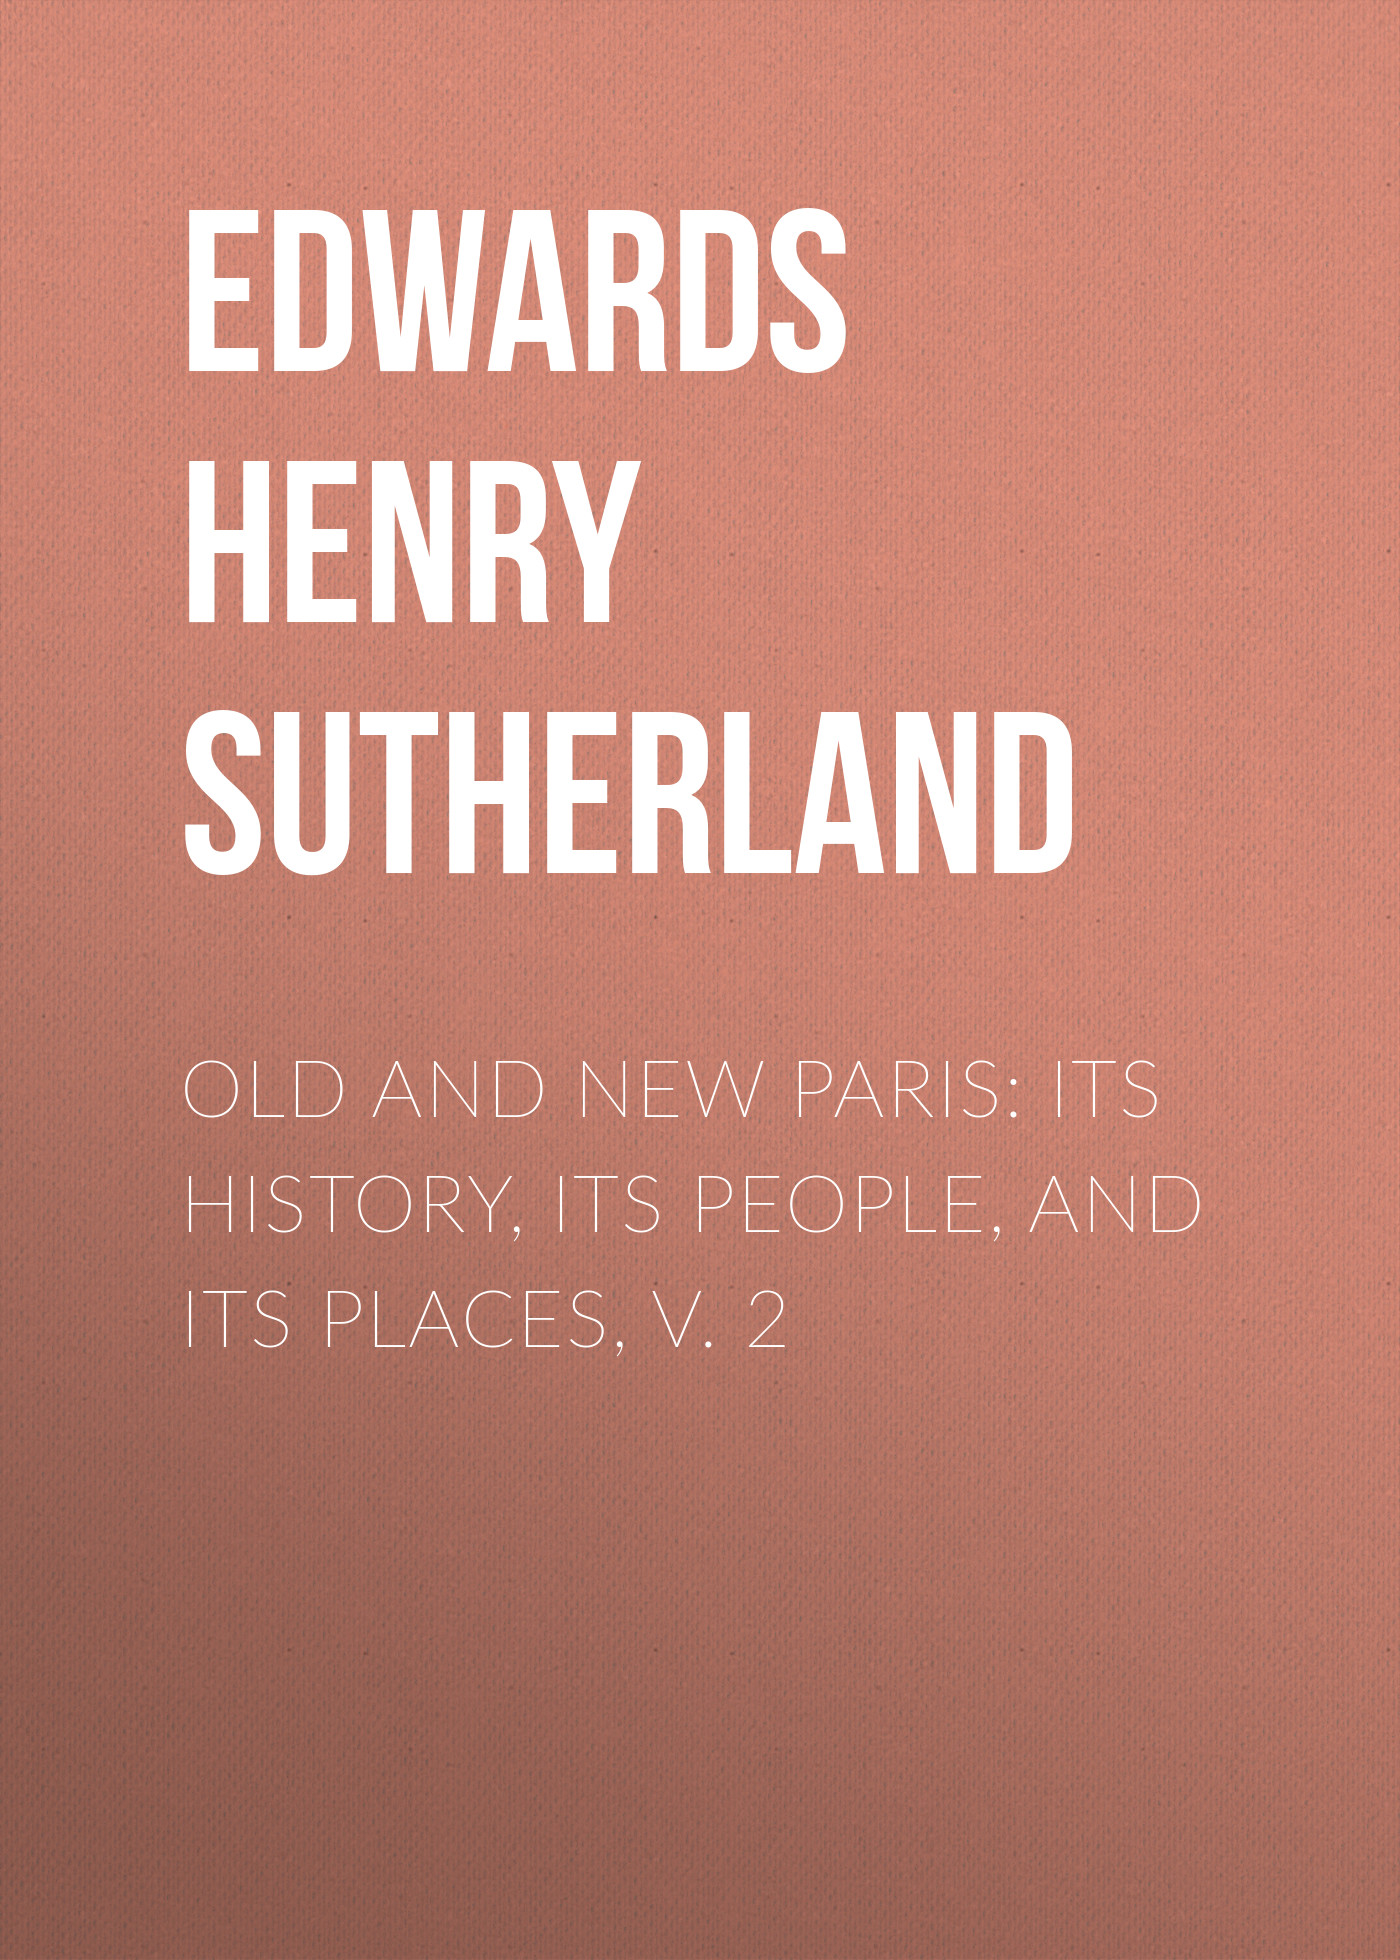 Edwards Henry Sutherland Old and New Paris: Its History, Its People, and Its Places, v. 2 g l shumway history of western nebraska and its people volume 3 part 1